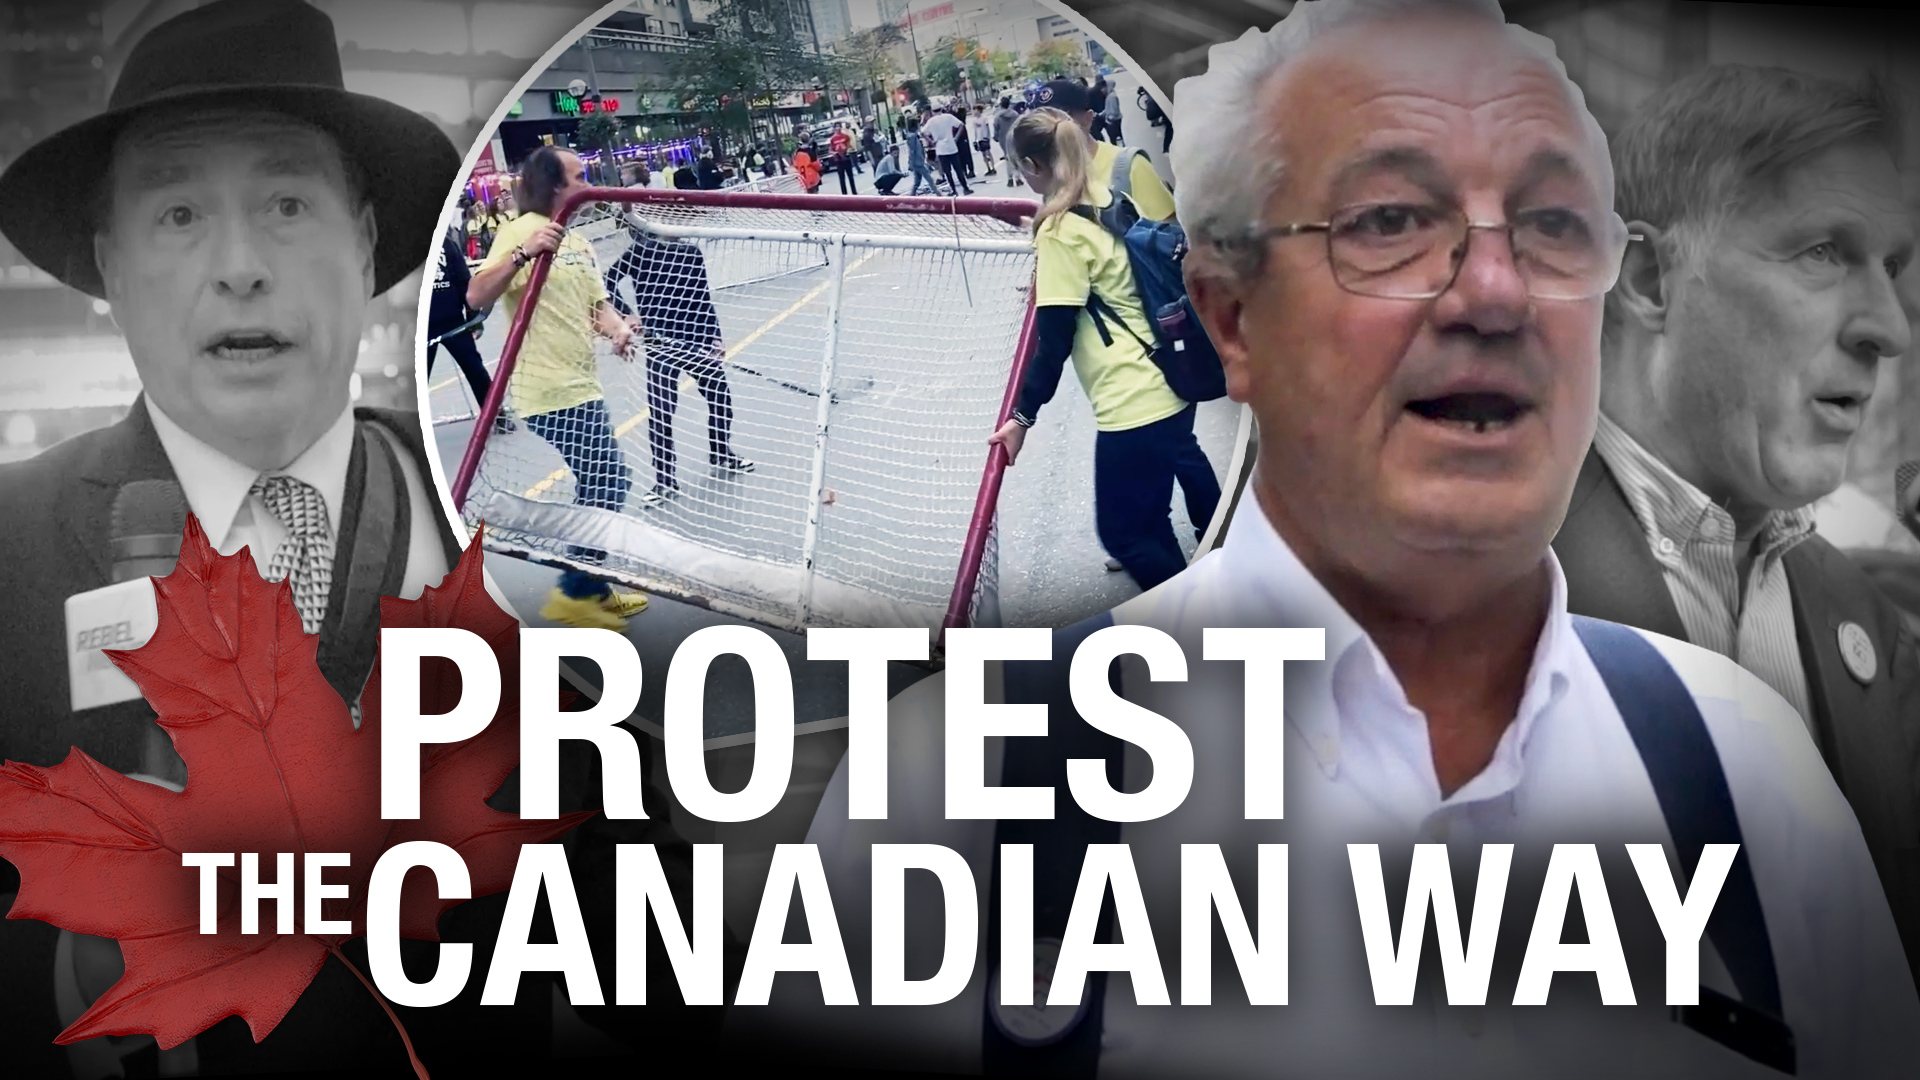 Pick-up hockey protest takes place outside Scotiabank Arena